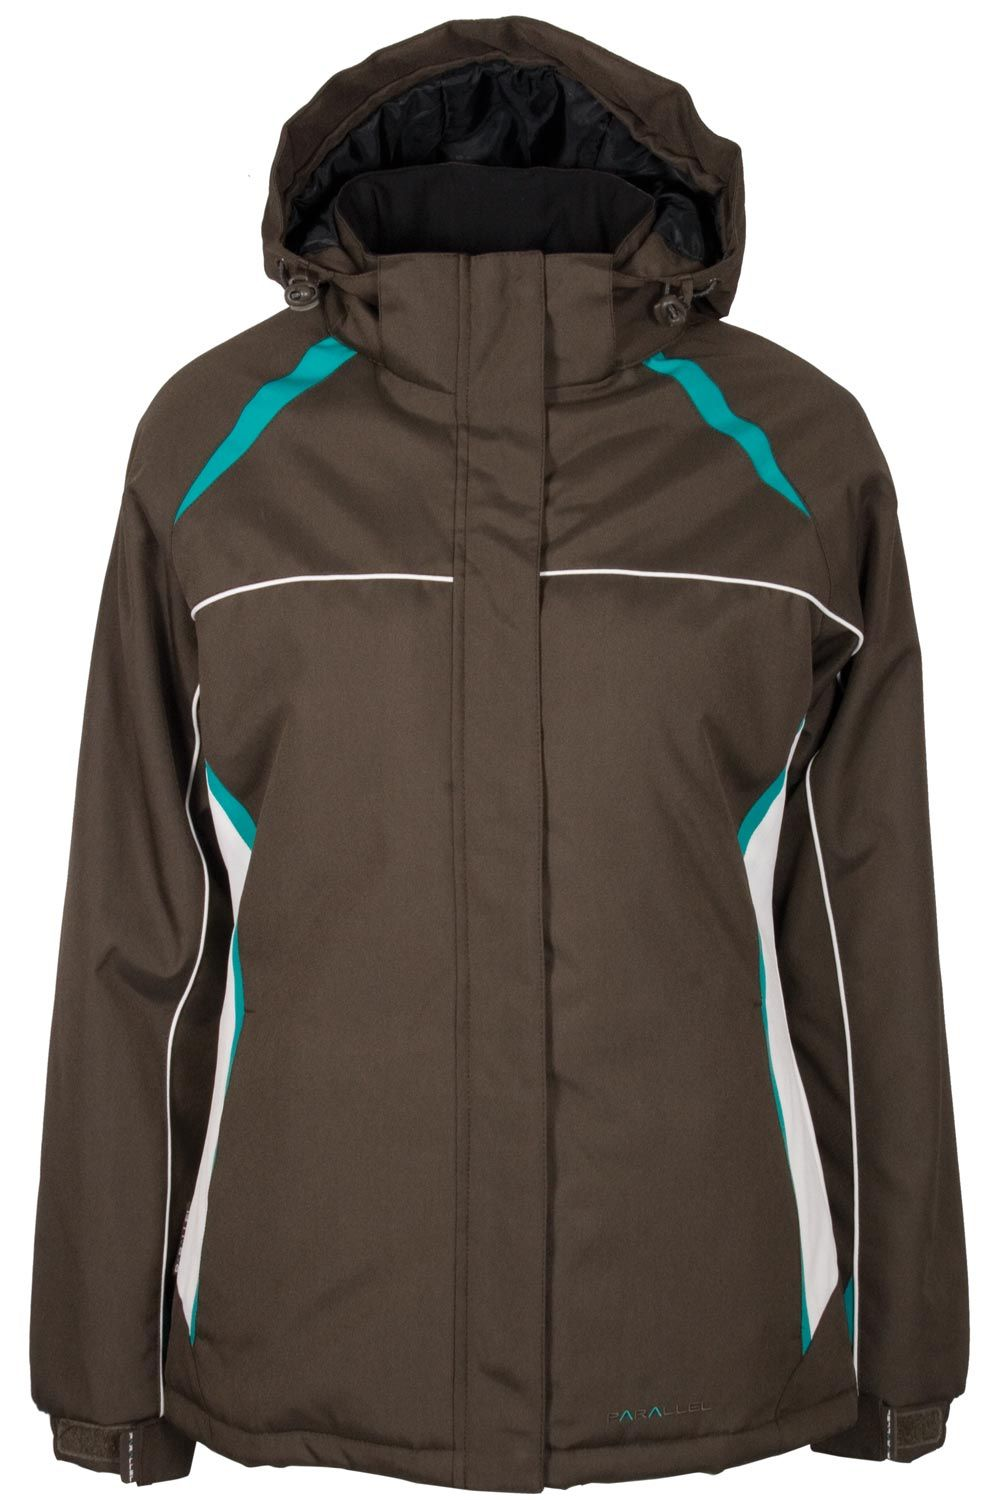 North Star Womens Ski Jacket – Brown – Snappy Expert